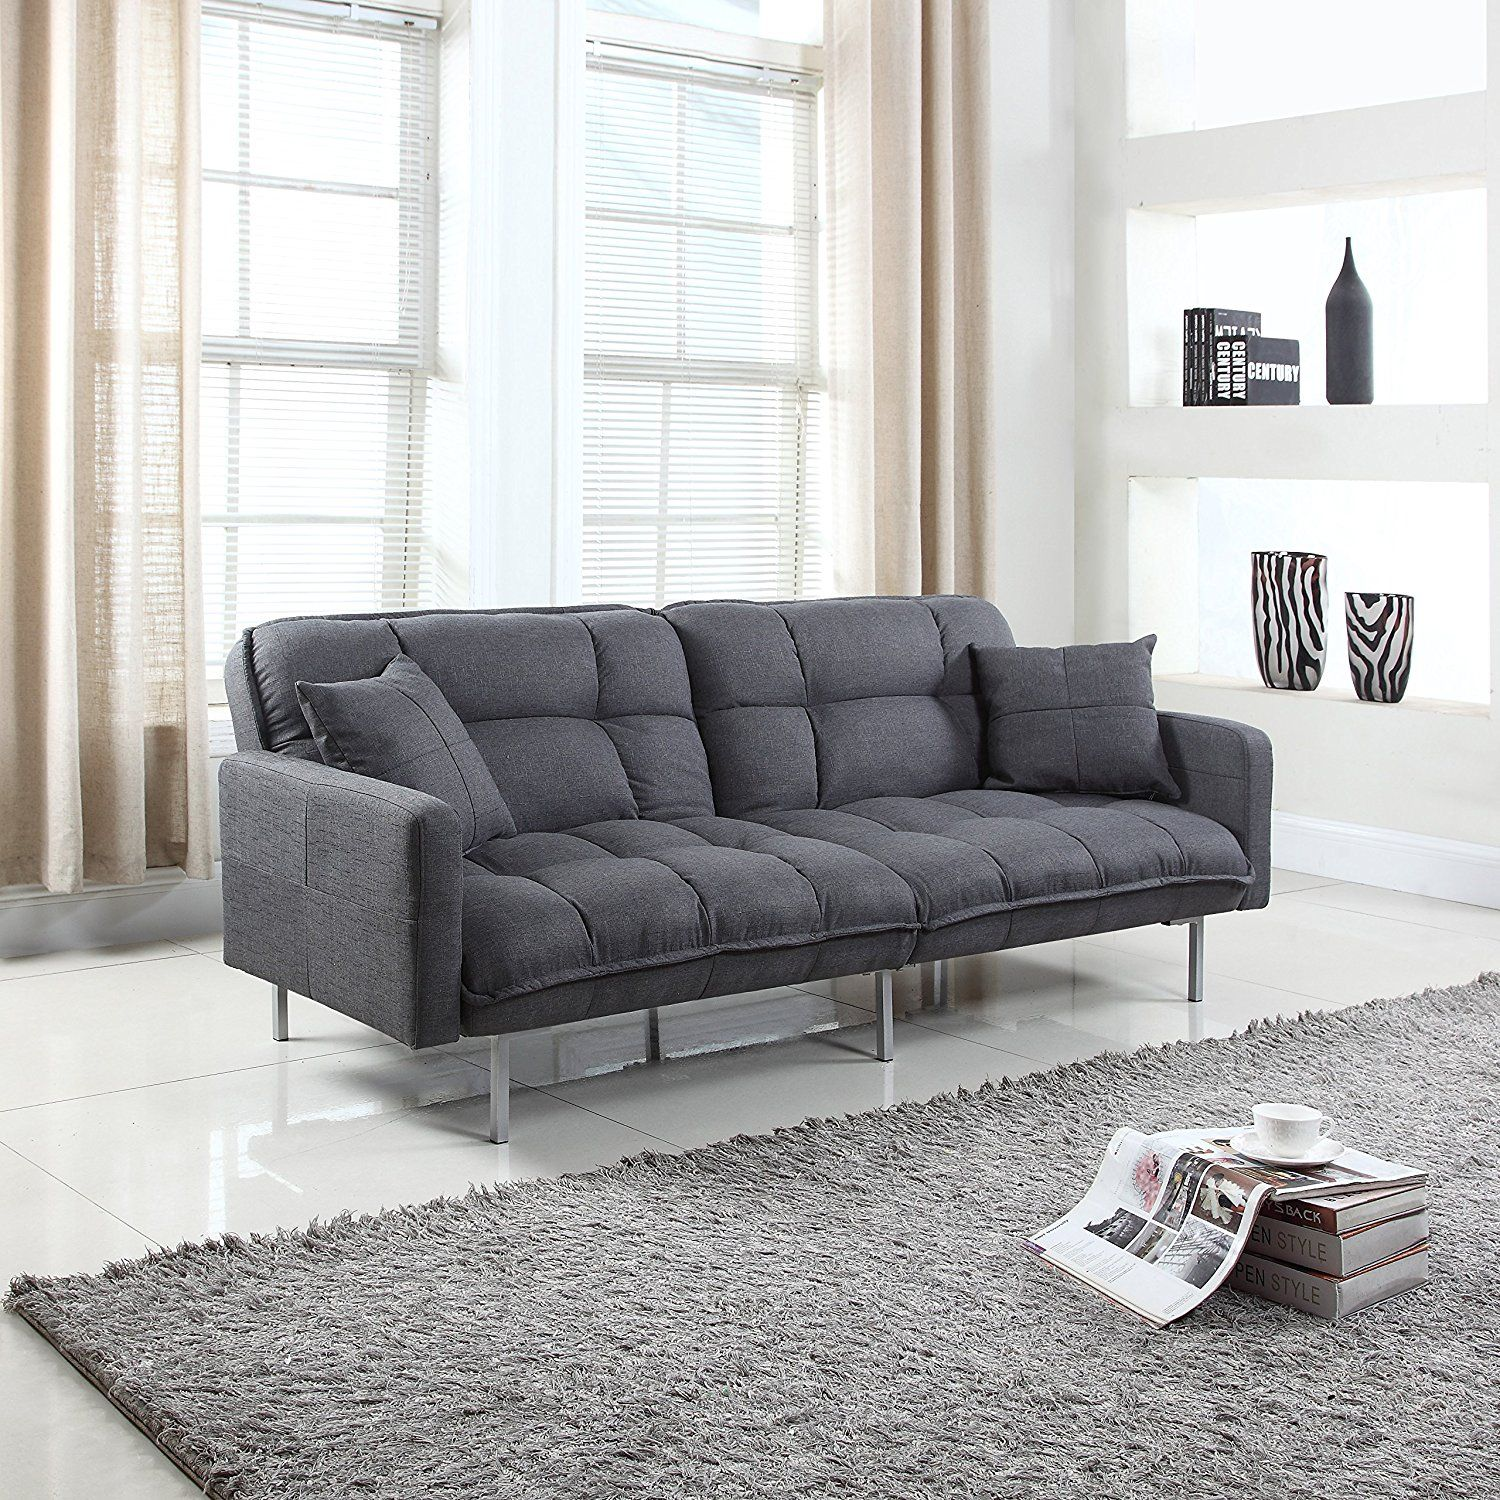 10 Best Sleeper Sofa Most Comfortable Sofa Bed Reviews In 2019 Futon Sofa Futon Living Room Futon Cushions